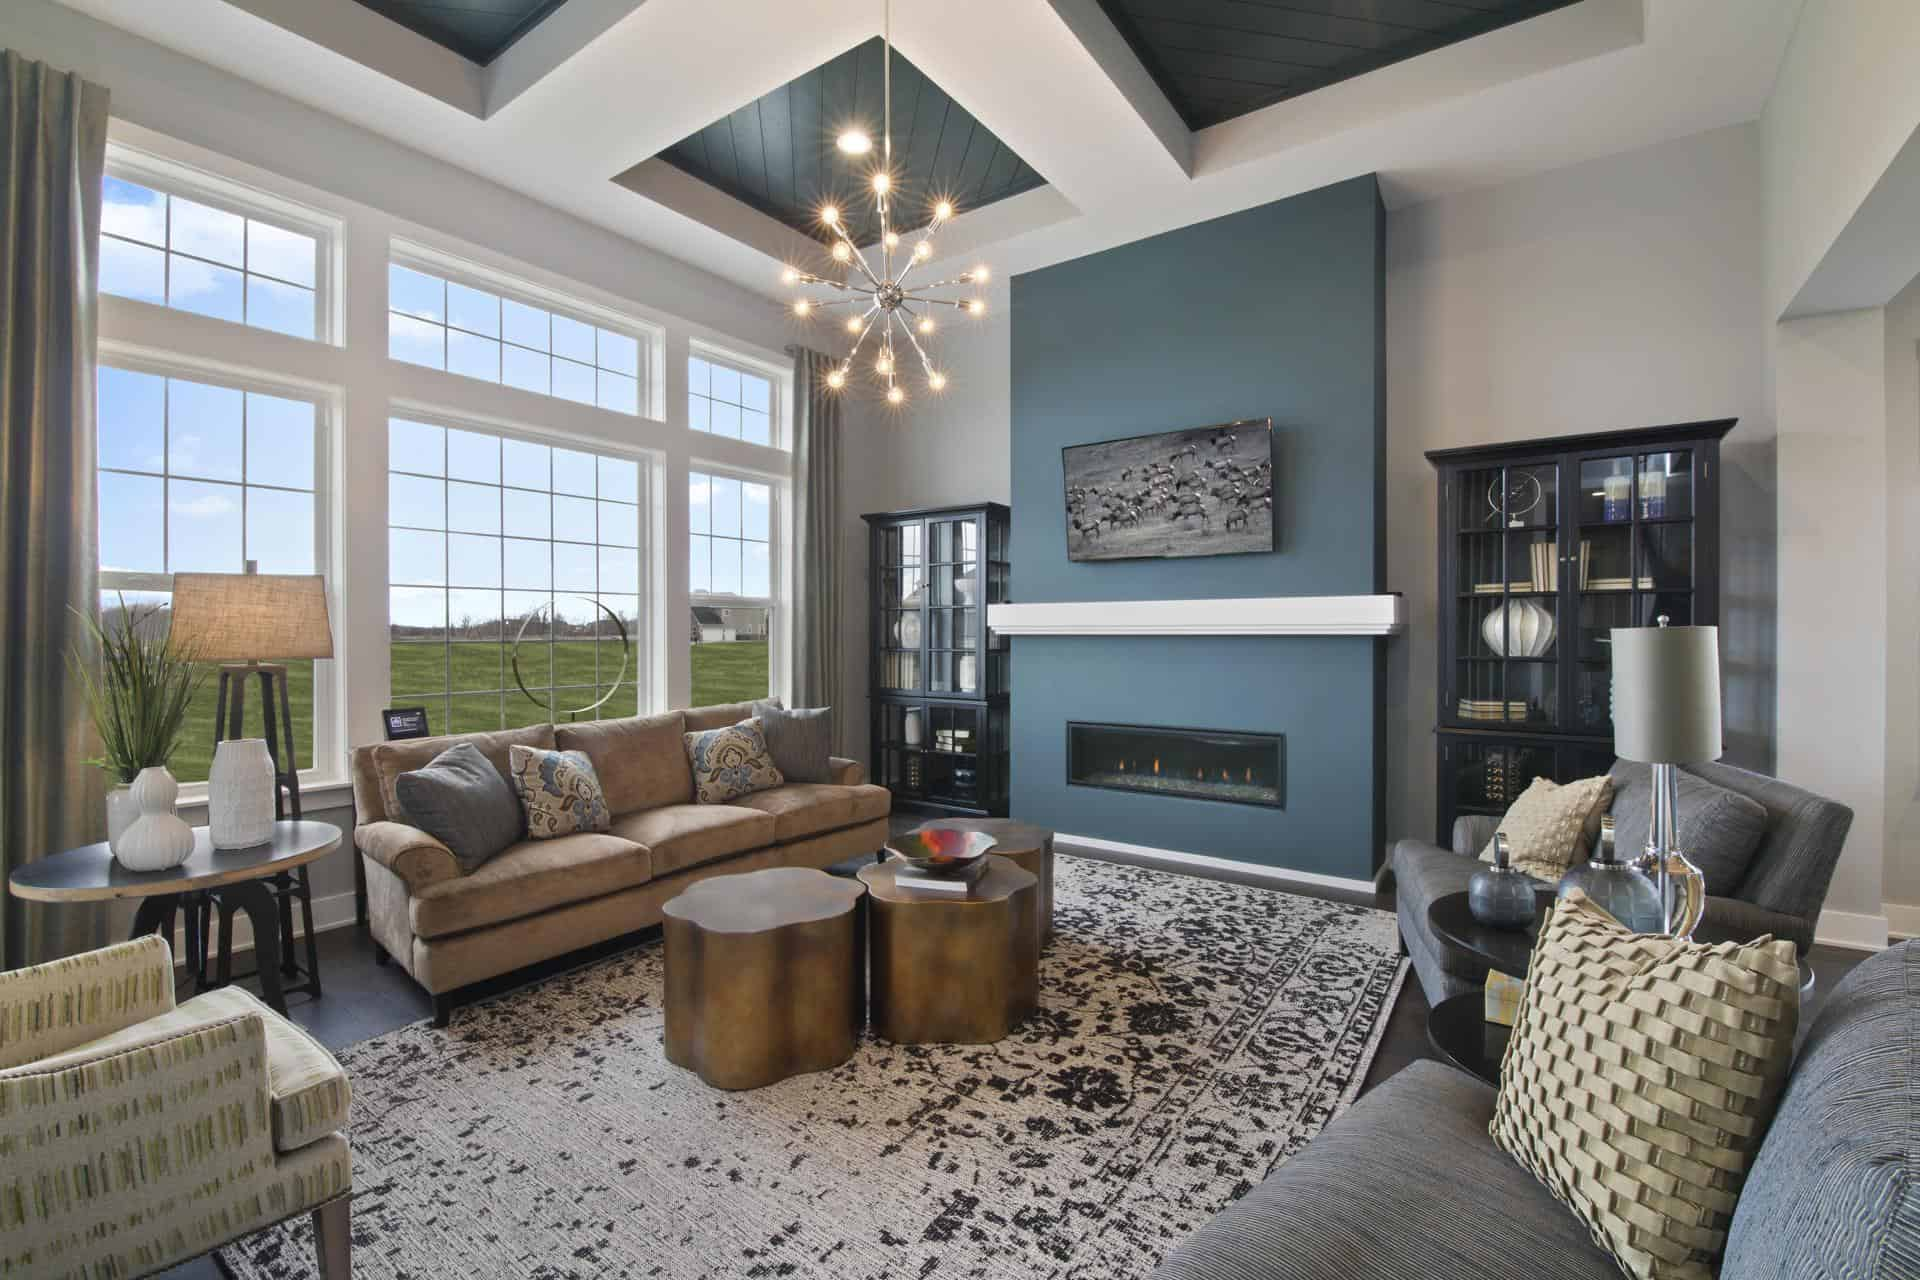 Ways To Decorate An Open Floor Plan Without Overcrowding